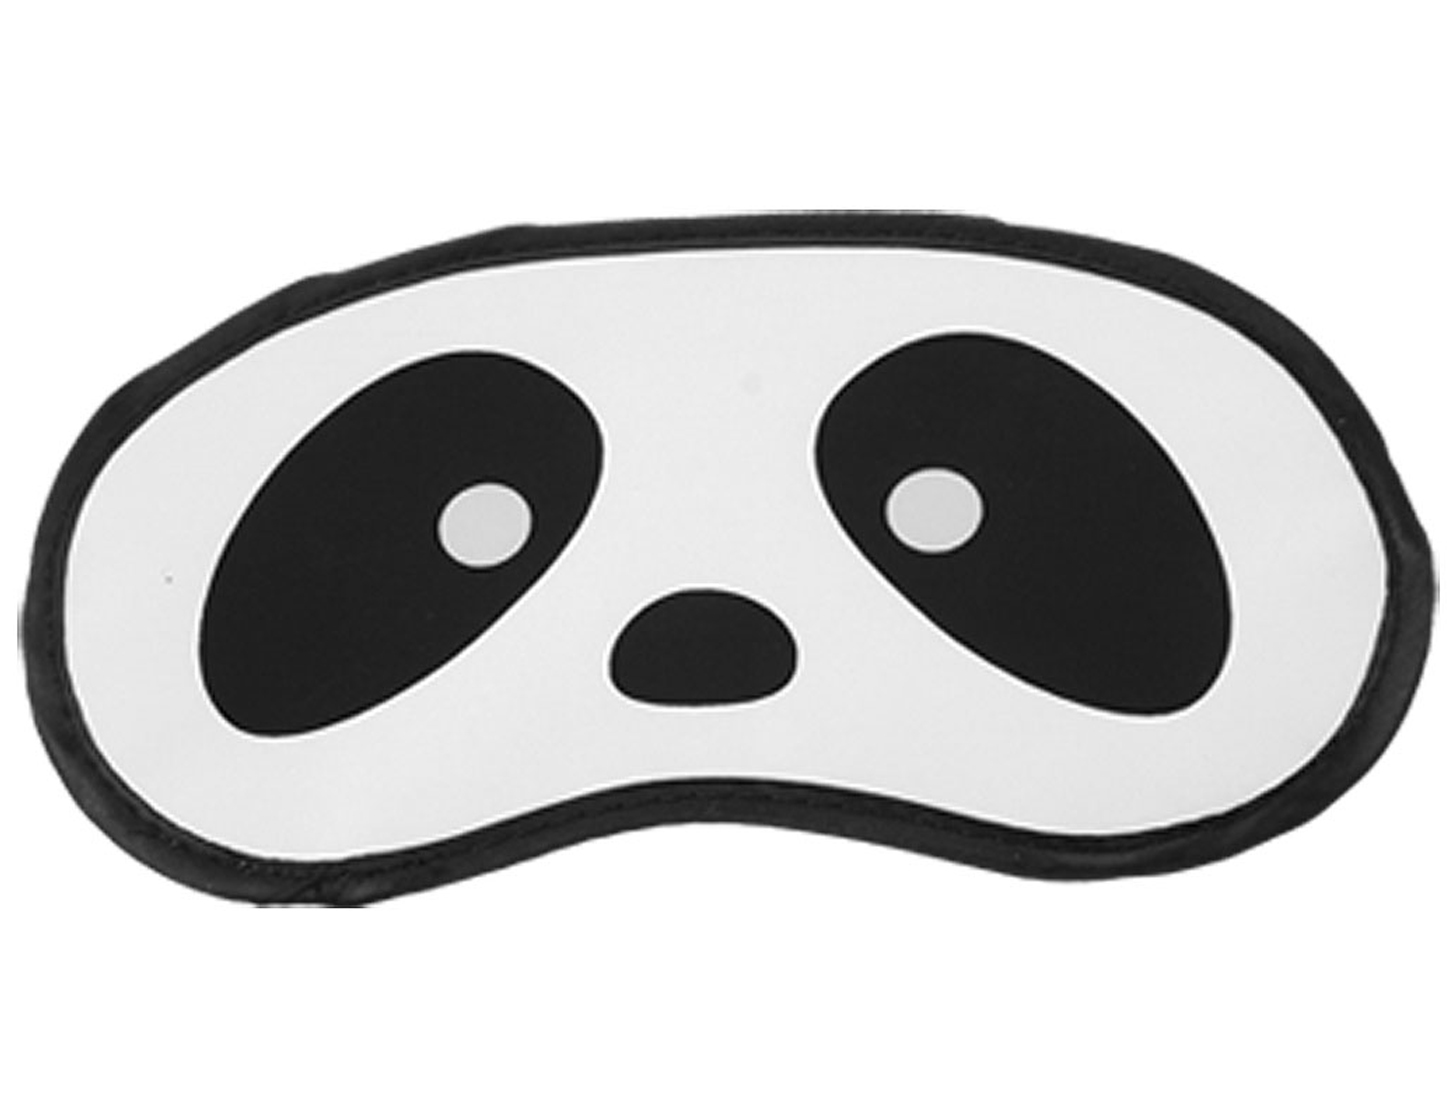 Black White Panda Eyes Pattern Sleep Eyeshade Cover Mask